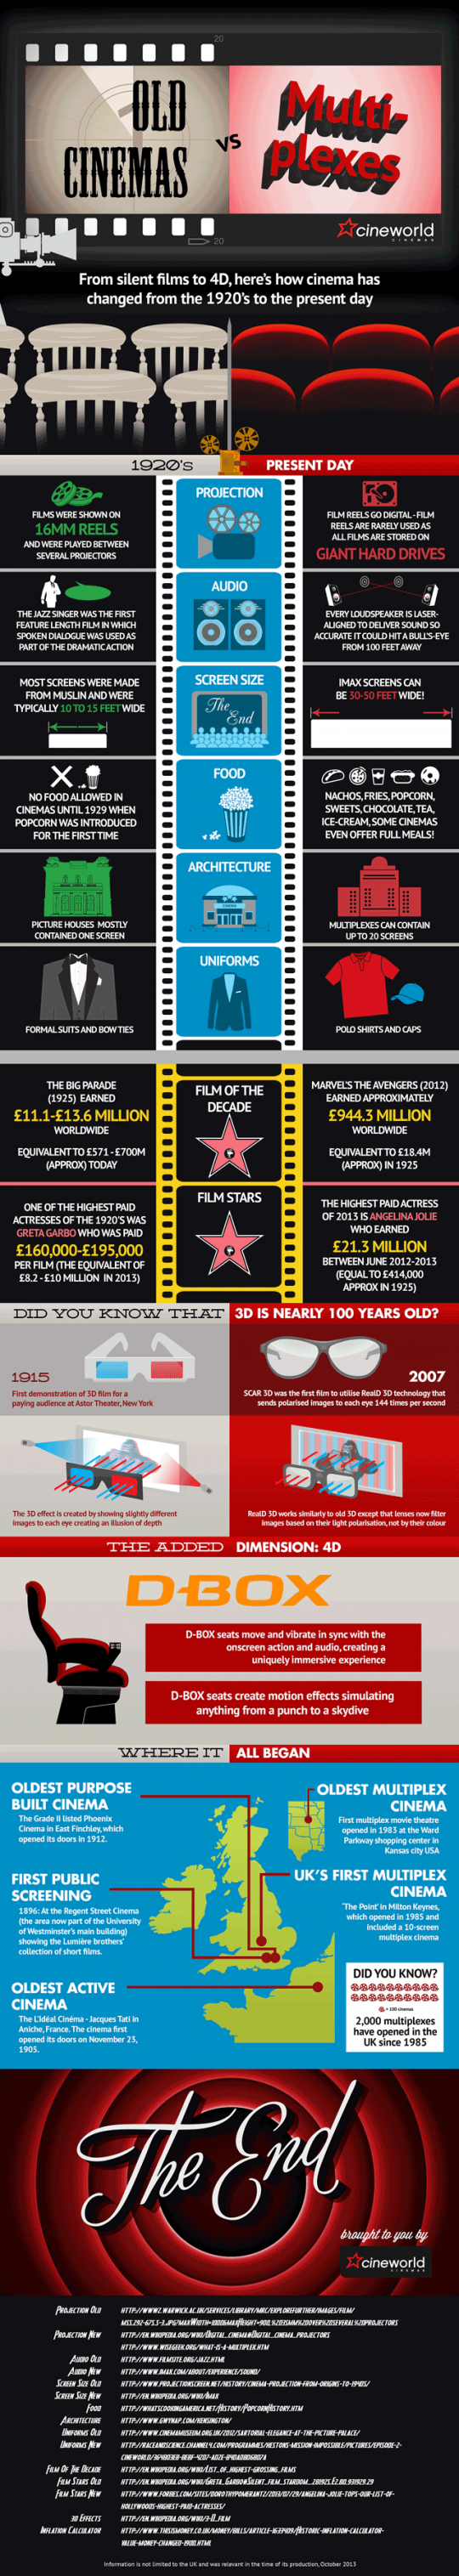 Old Cinemas vs. Multiplexes